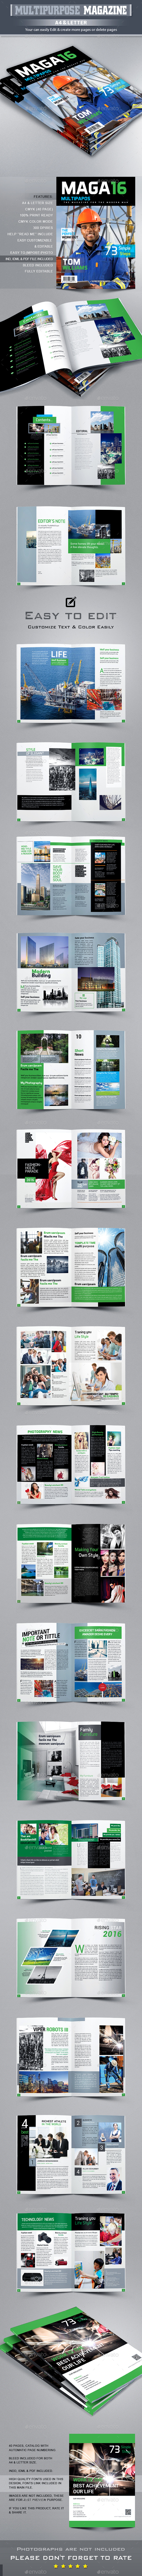 Magazine 40 Pages A4 & US Letter size Template InDesign INDD #design ...